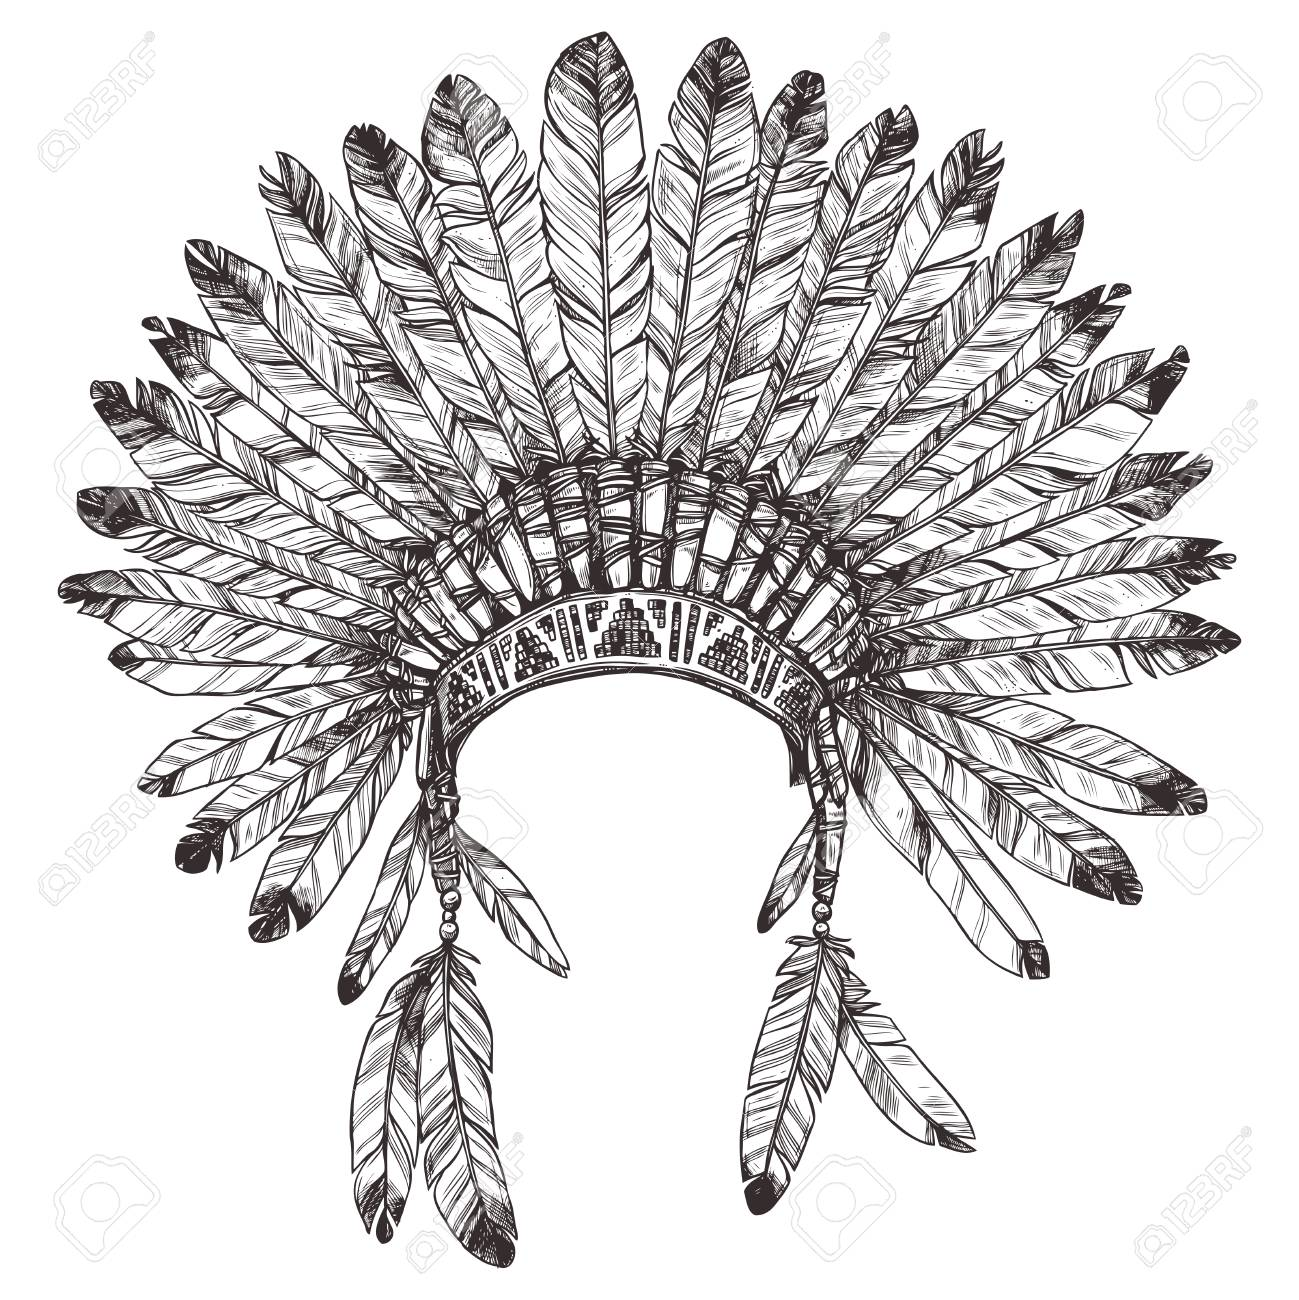 1299x1300 Hand Drawing Of Native American Indian Headdress. Royalty Free